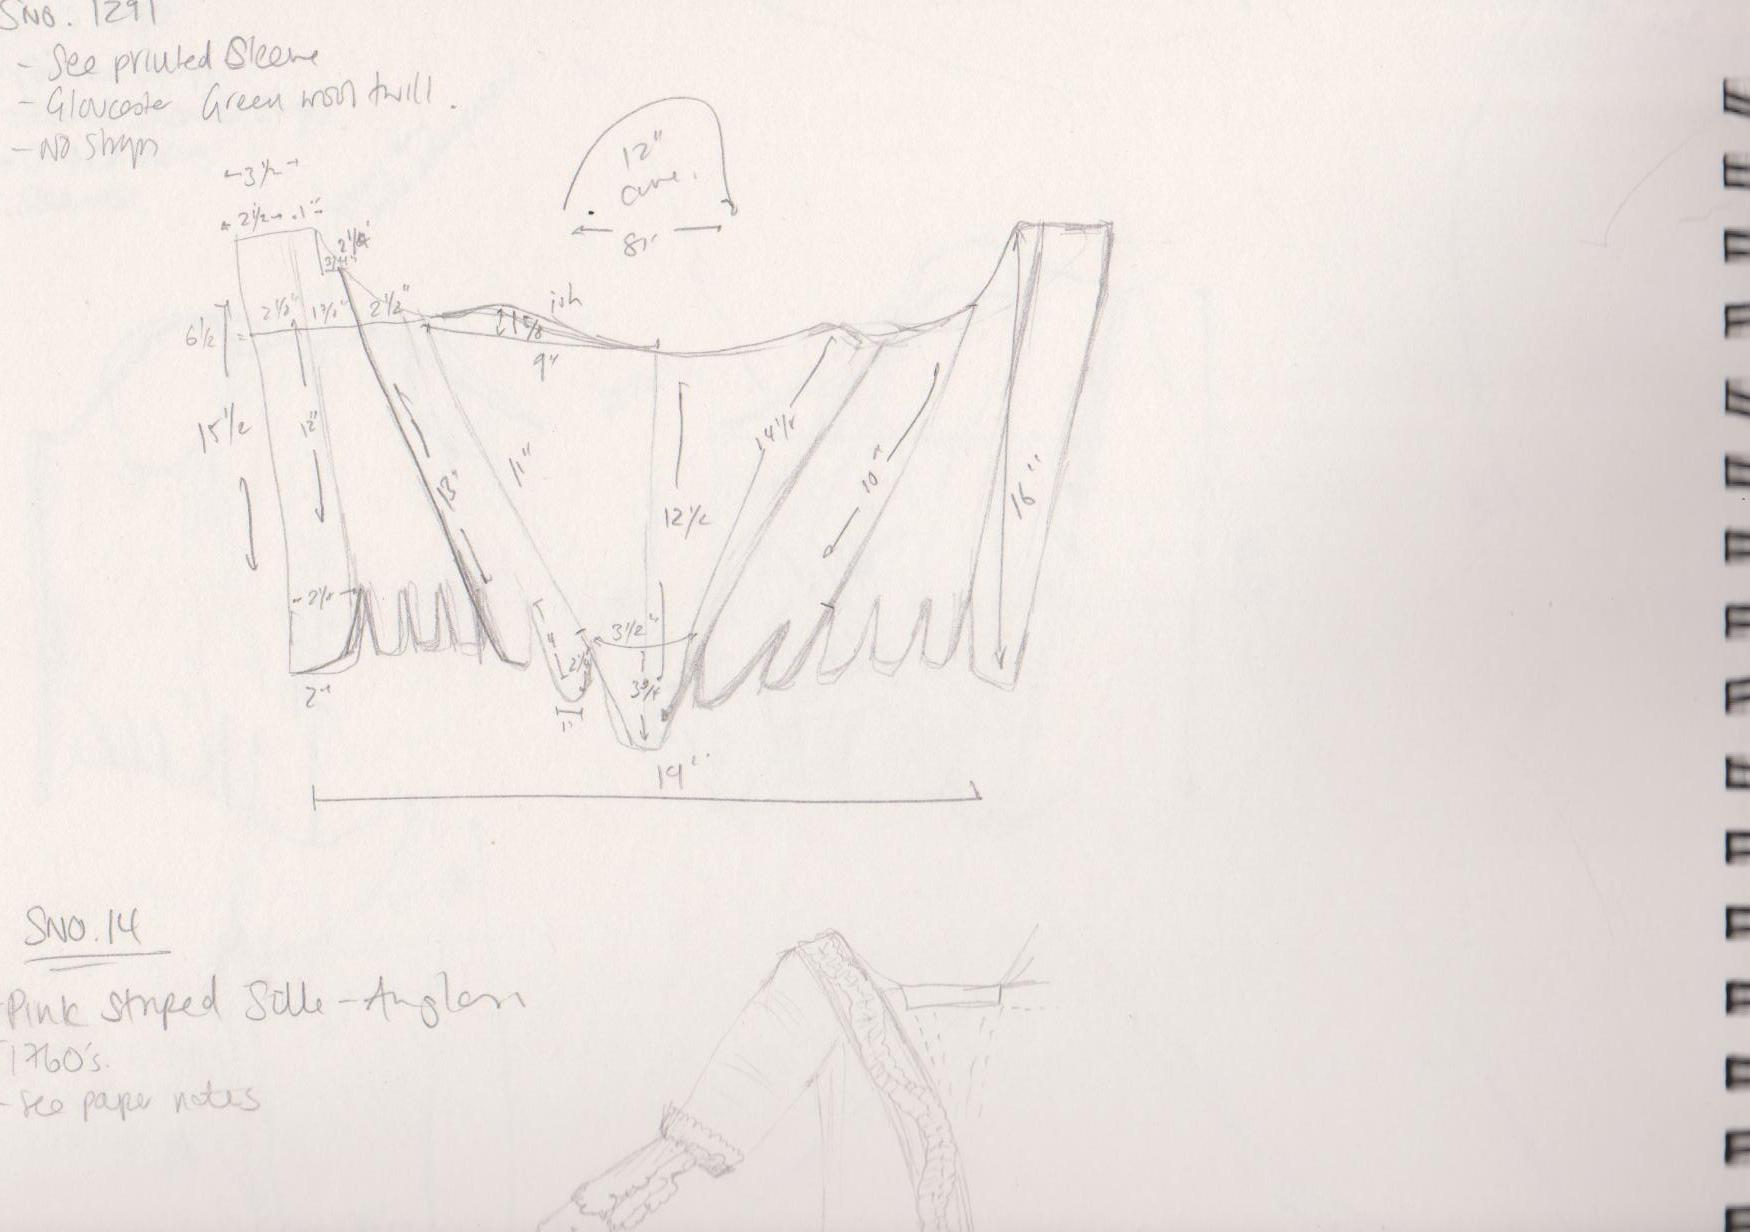 SNO.1291 - HandBound Research Sketch